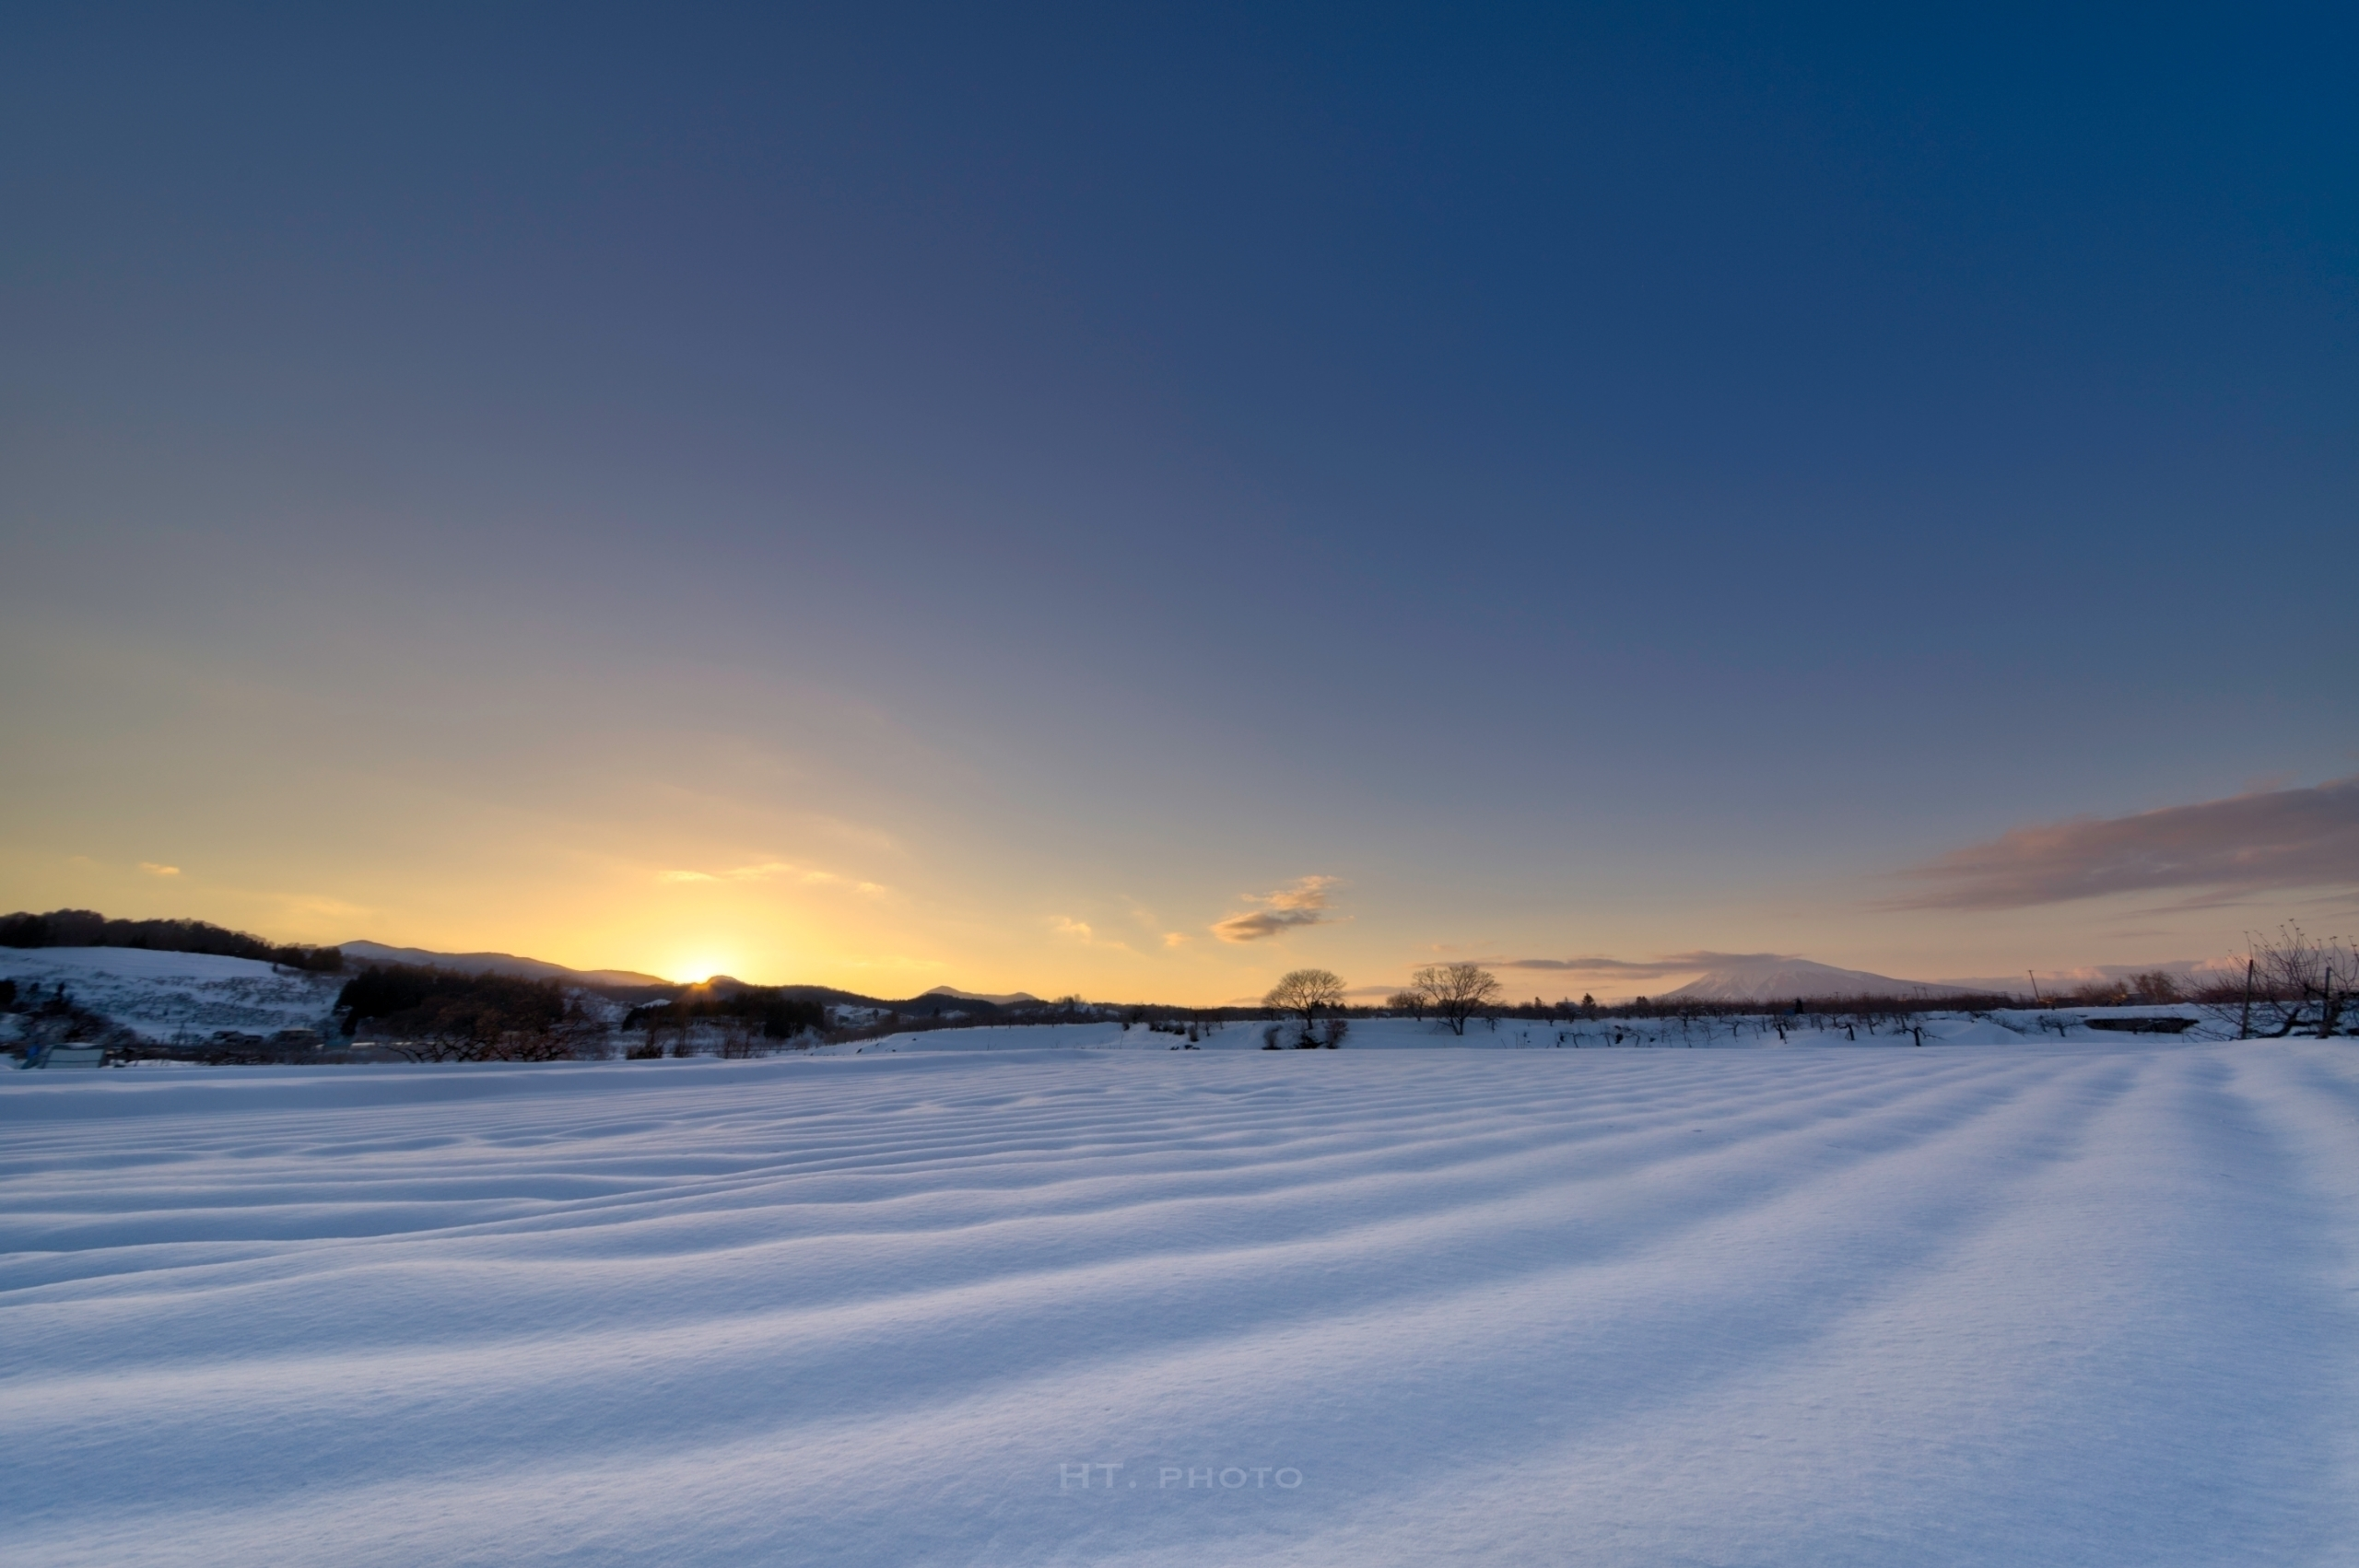 snow, blue, sky, clouds, sunset - ht-photo | ello